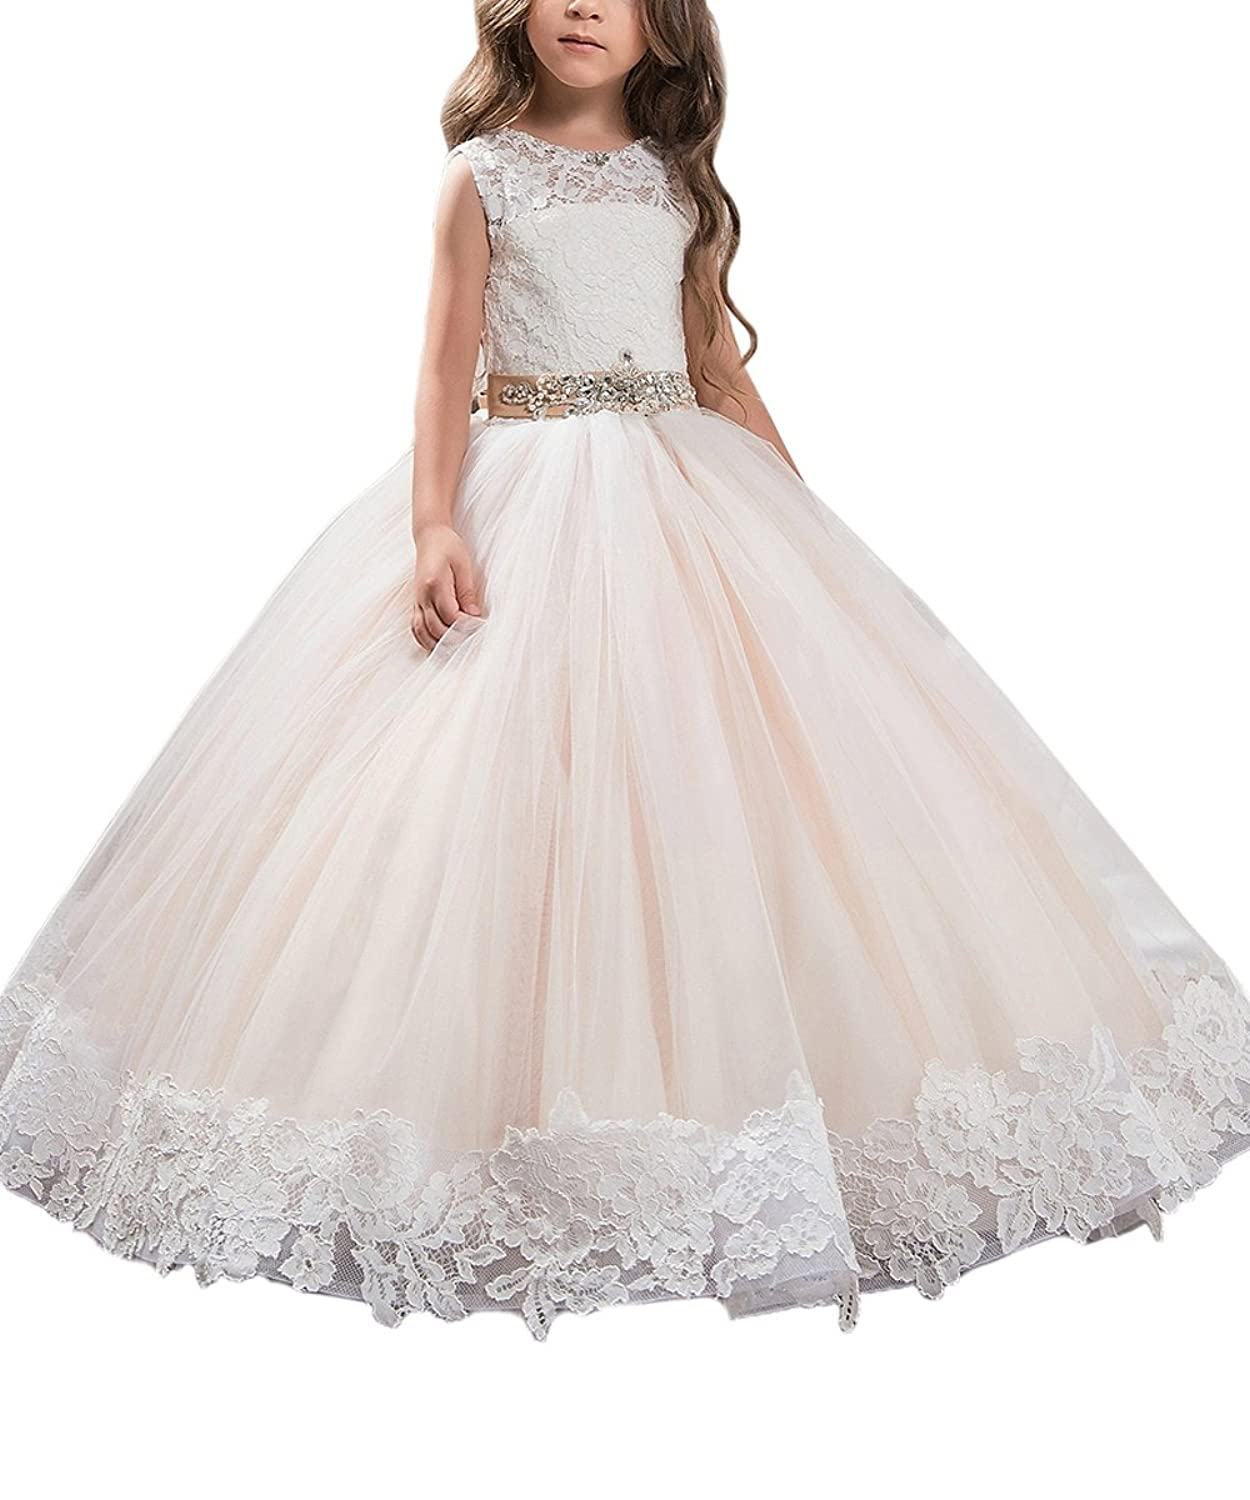 395049883a4a AbaoSisters Flower Girl Dress Floral Appliques Sleeveless Fluffy Kids Ball  Gown White Ivory